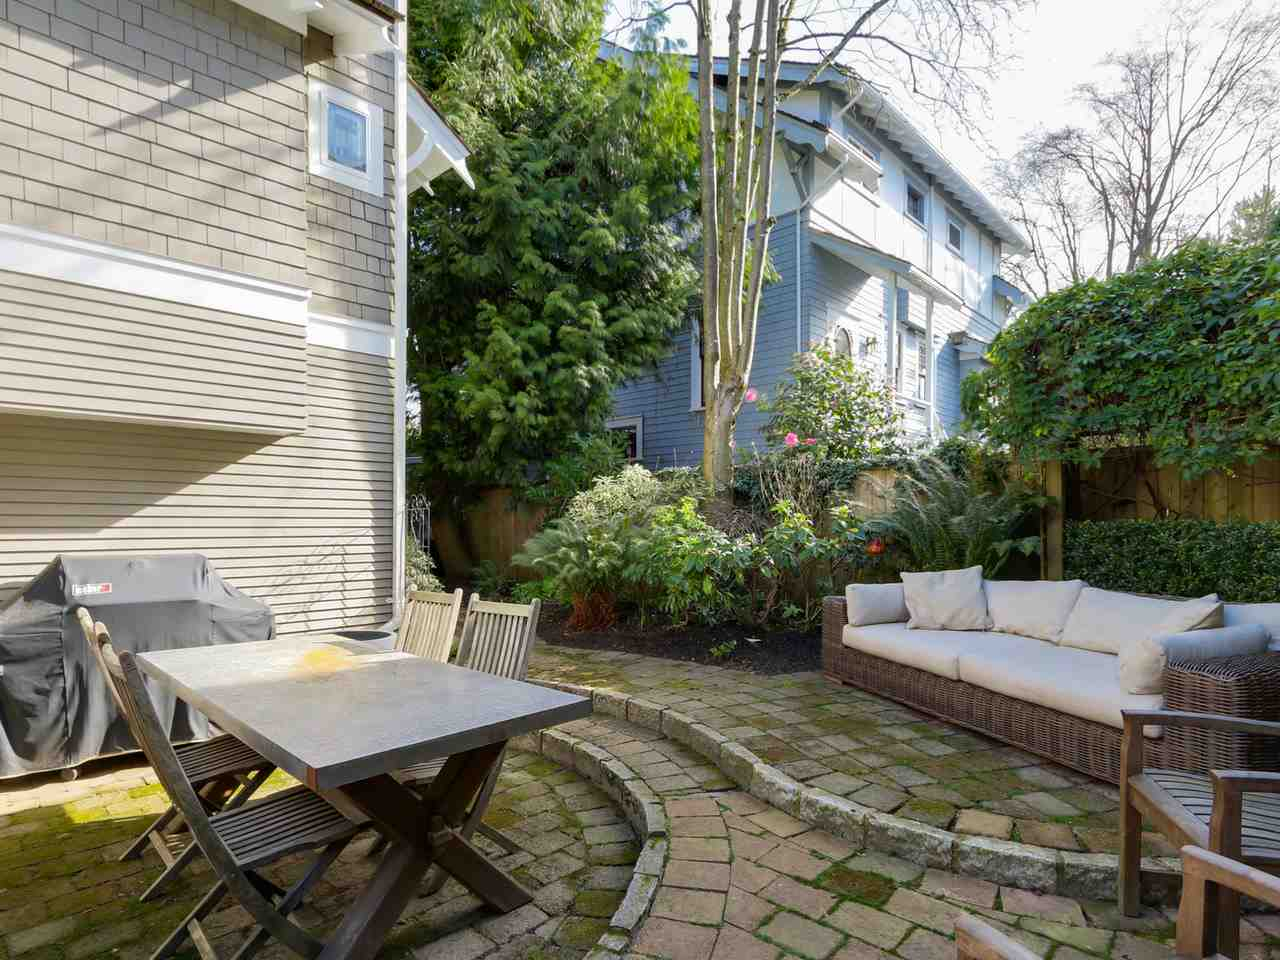 Photo 17: 1835 COLLINGWOOD STREET in Vancouver: Kitsilano House for sale (Vancouver West)  : MLS(r) # R2039694